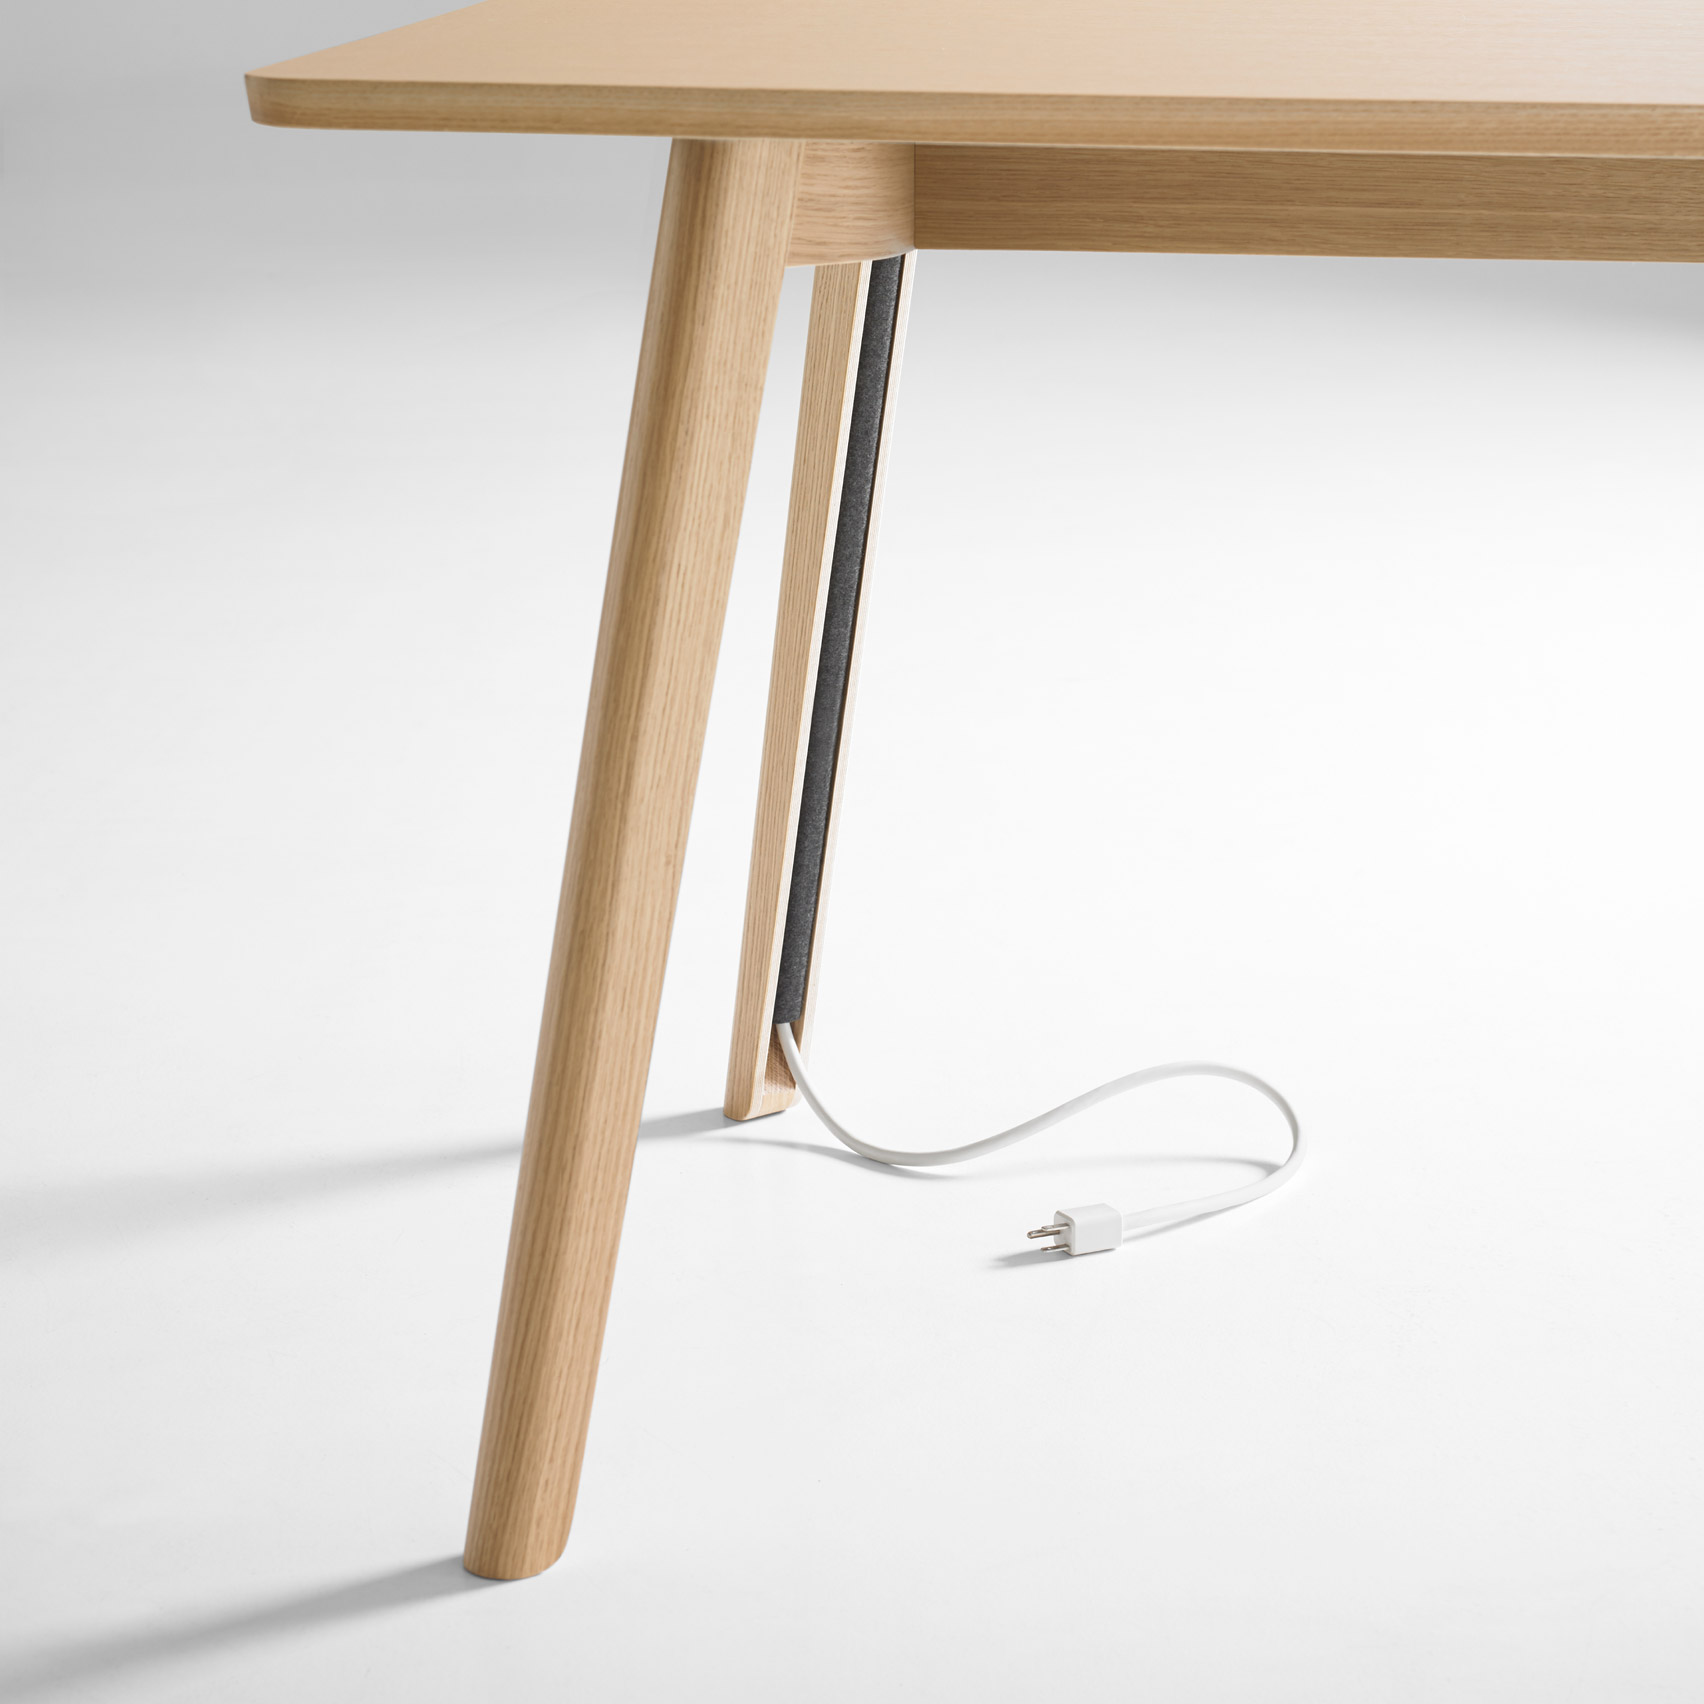 Solem table is ideal to keep your space in perfect order as you'll see no cables hanging and lying everywhere